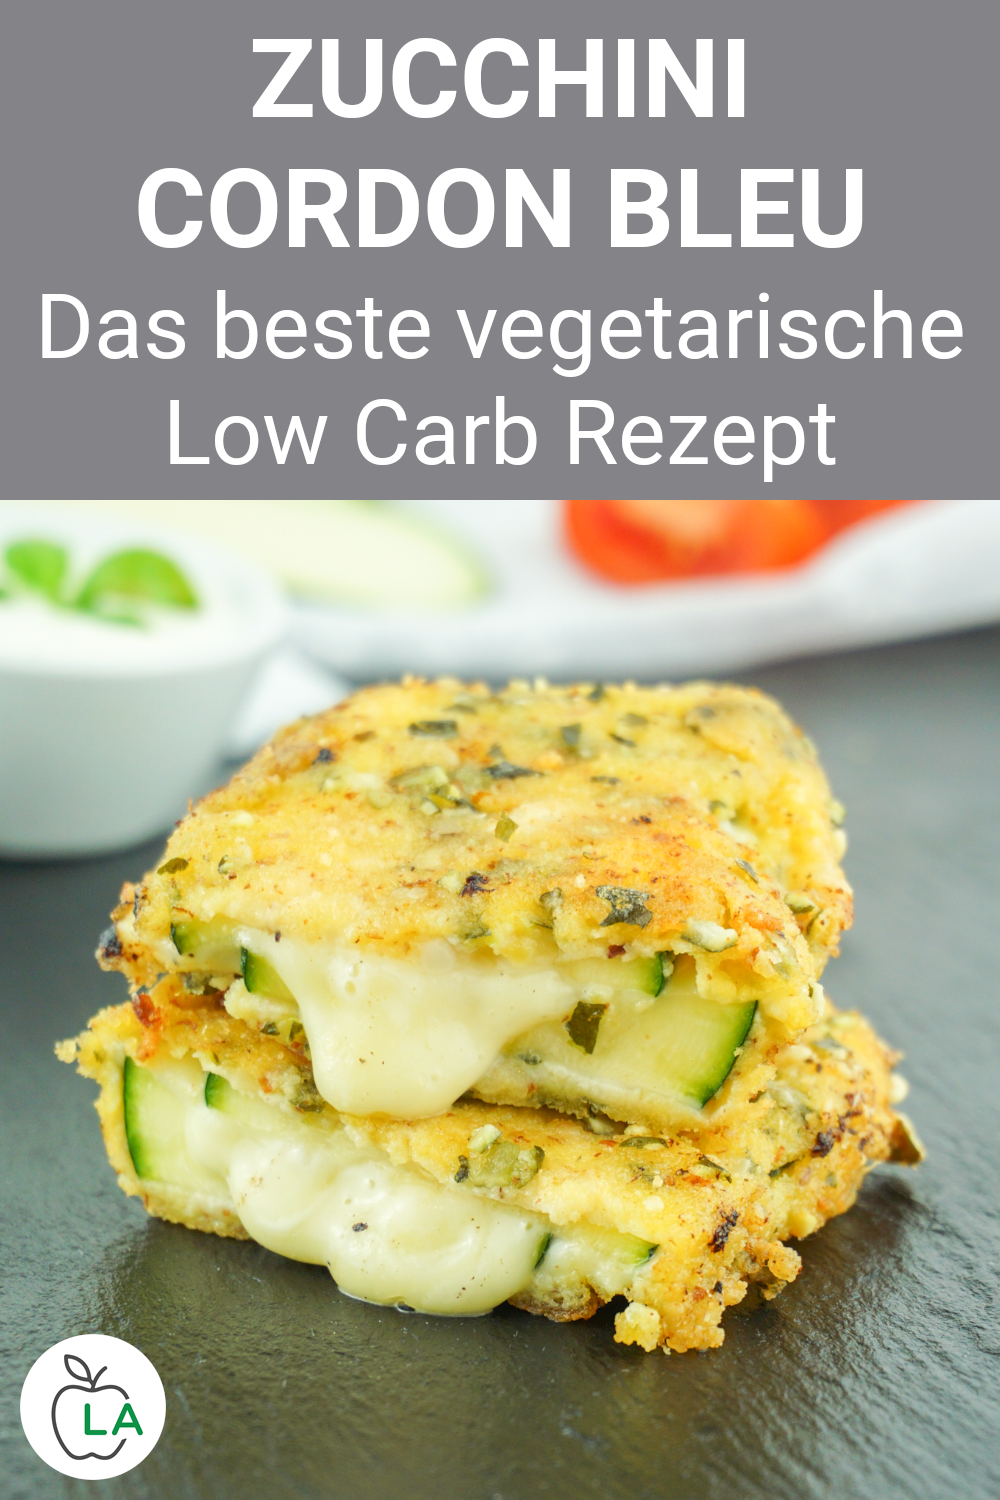 Photo of Zucchini Cordon Bleu – One of the best vegetarian low carb recipes